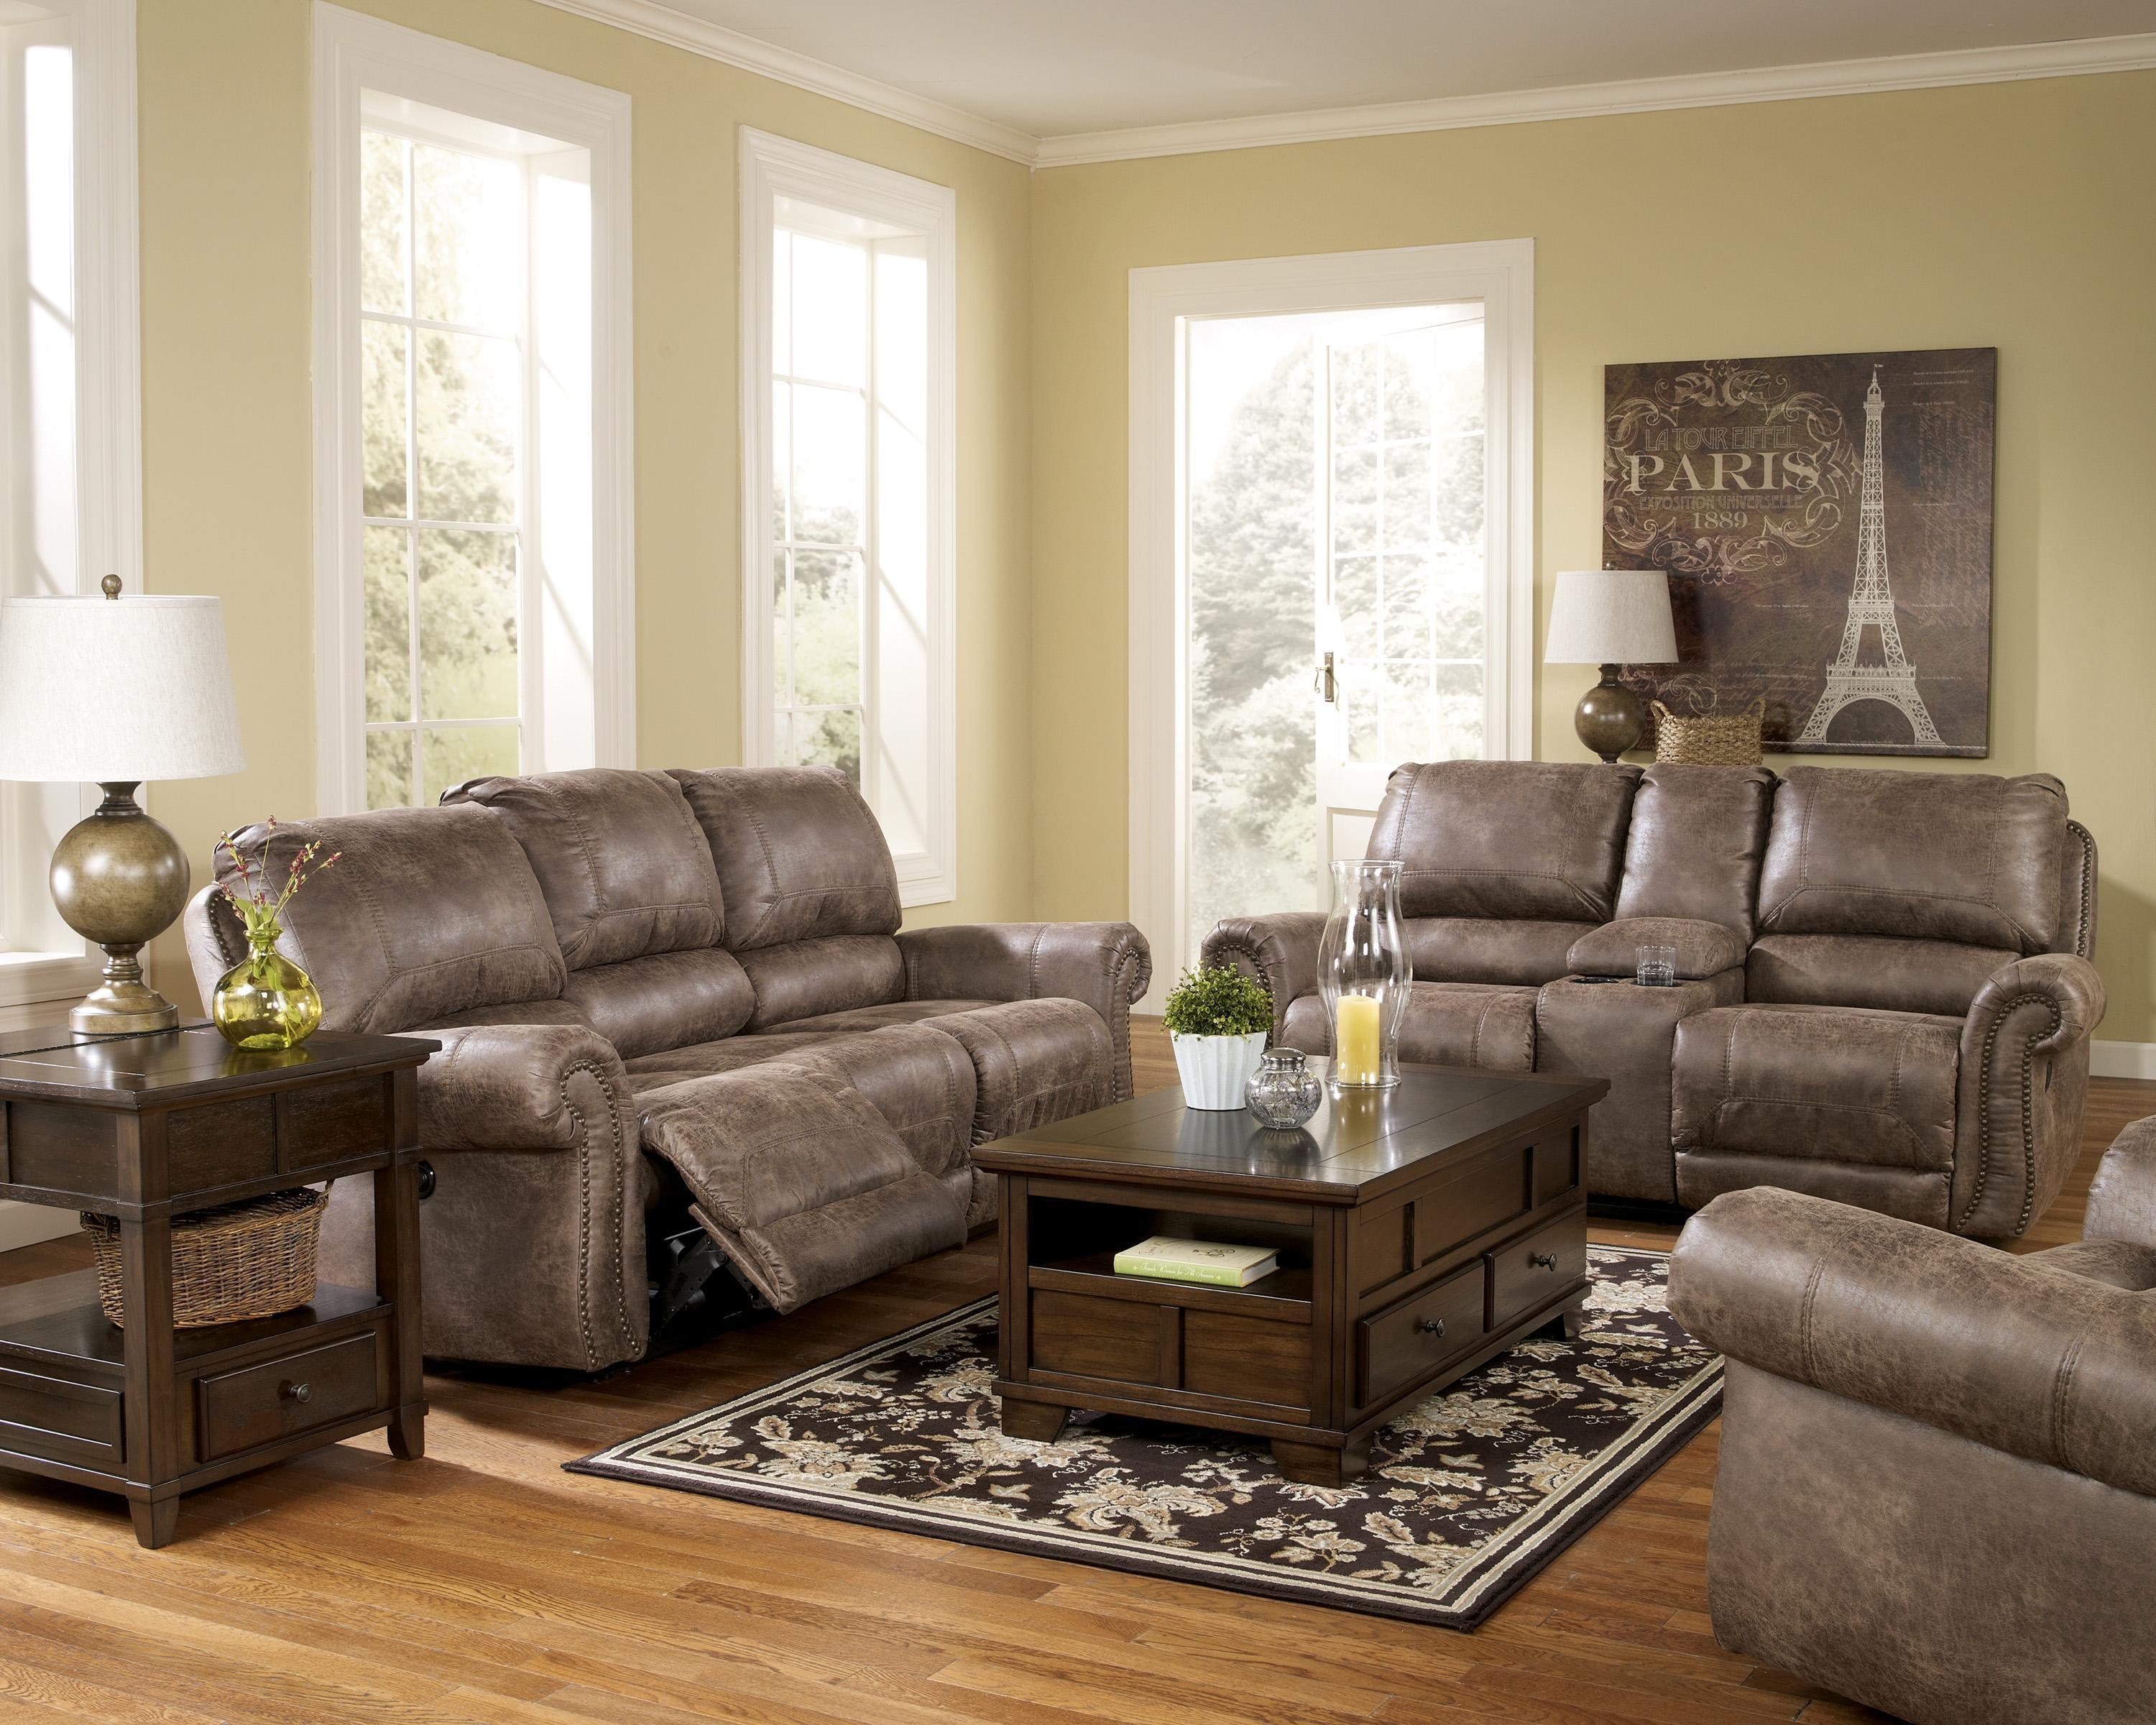 Reclining faux leather sofa with rolled arms nail head trim by signature design by ashley Ashley couch and loveseat